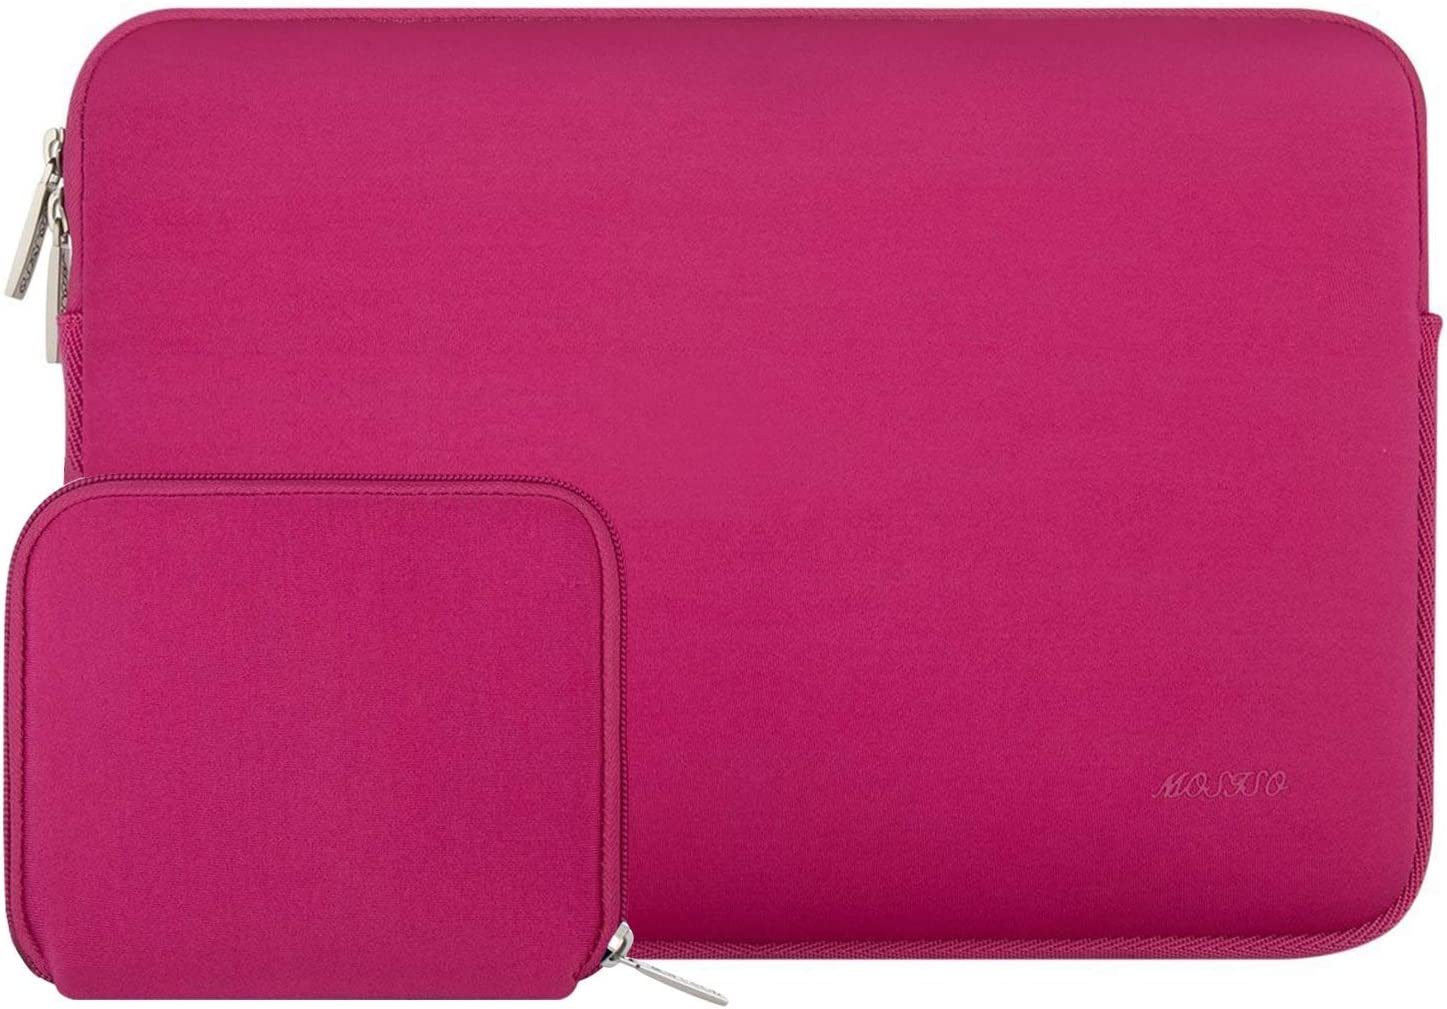 MOSISO Laptop Sleeve Compatible with 13-13.3 inch MacBook Pro, MacBook Air, Notebook Computer, Water Repellent Neoprene Bag with Small Case, Rose Red